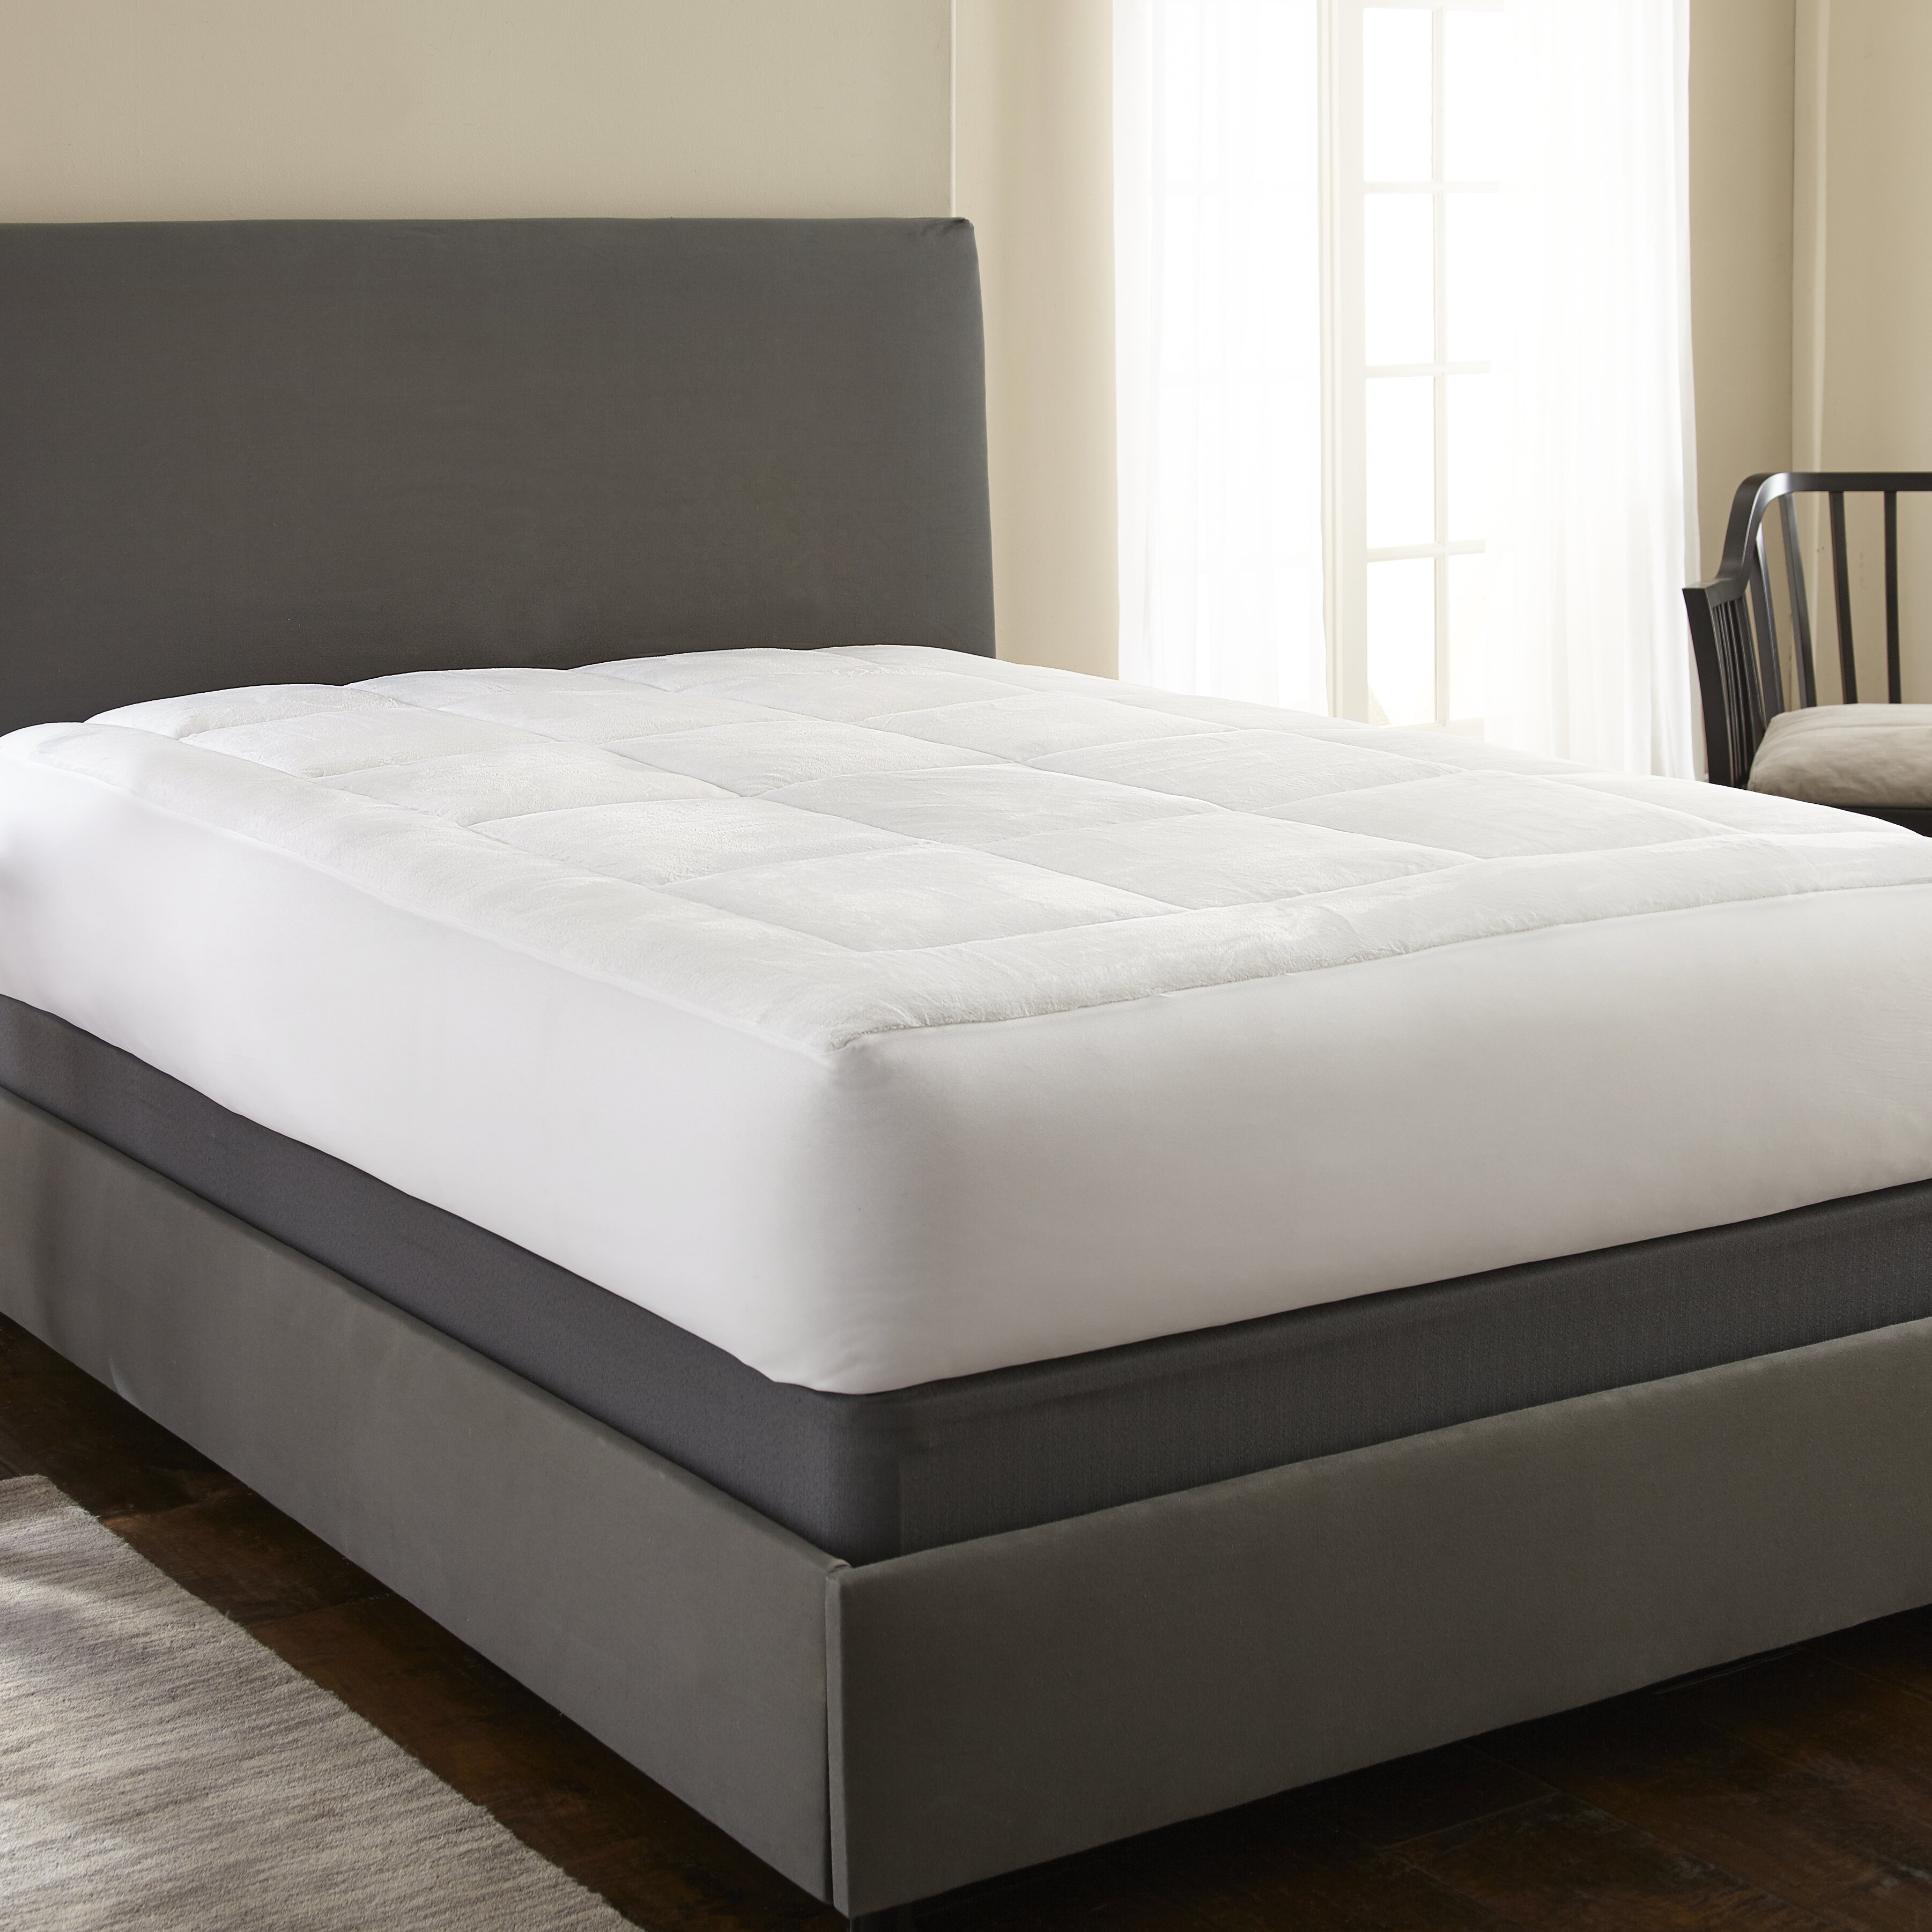 Ienjoy Home Simply Soft Pillow Top Luxury Mattress Pad